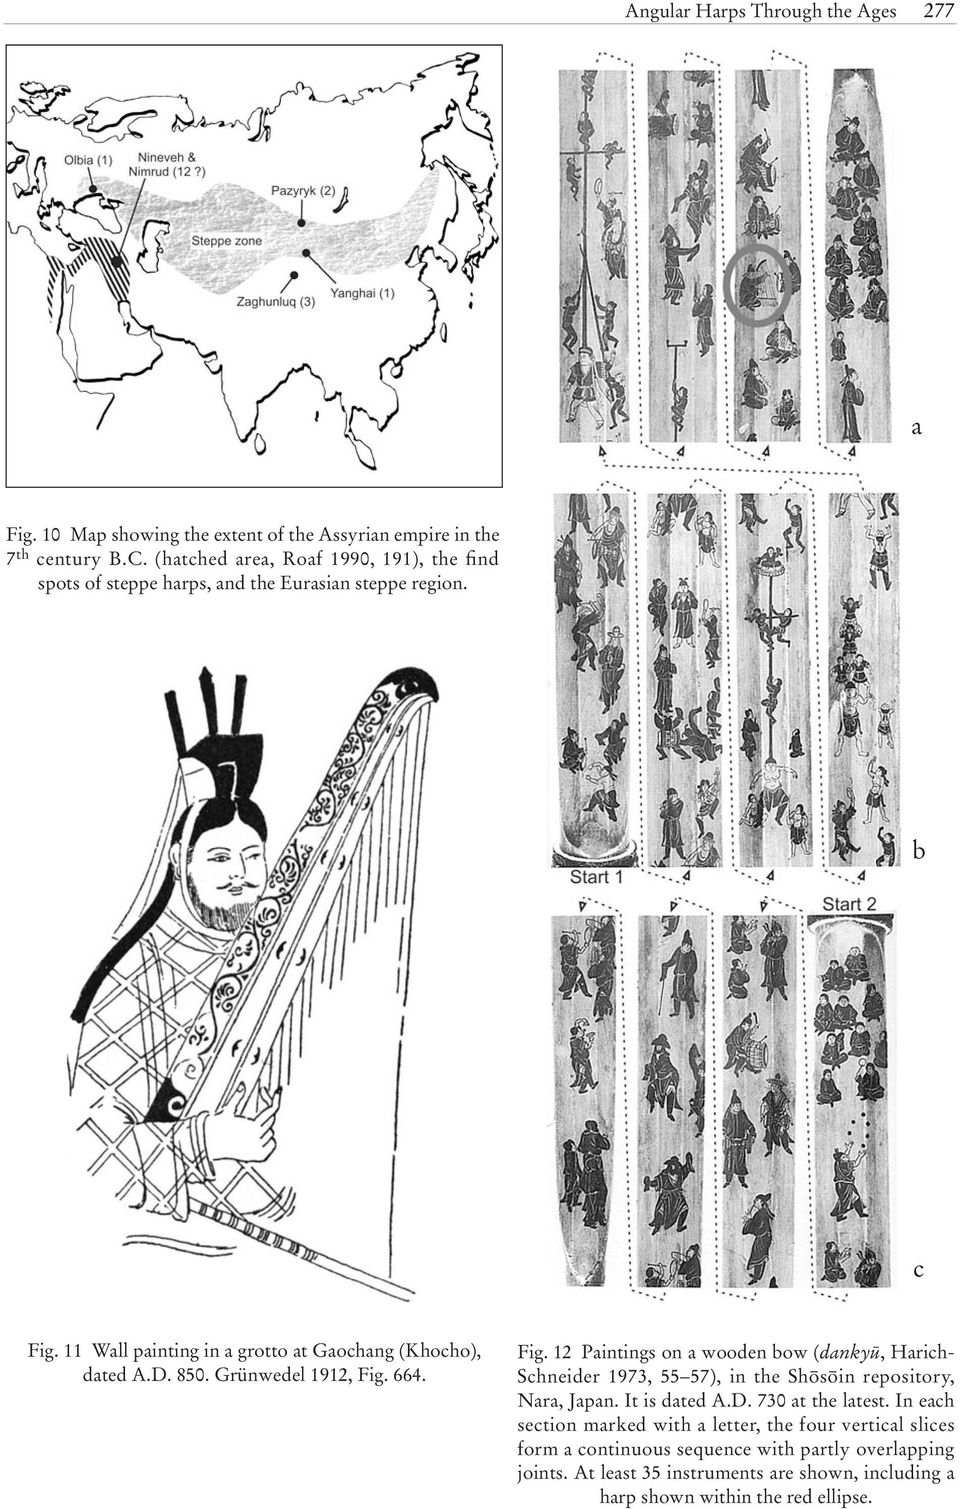 850. Grünwedel 1912, Fig. 664. Fig. 12 Paintings on a wooden bow (dankyü, Harich- Schneider 1973, 55 57), in the ShΩsΩin repository, Nara, Japan. It is dated A.D.